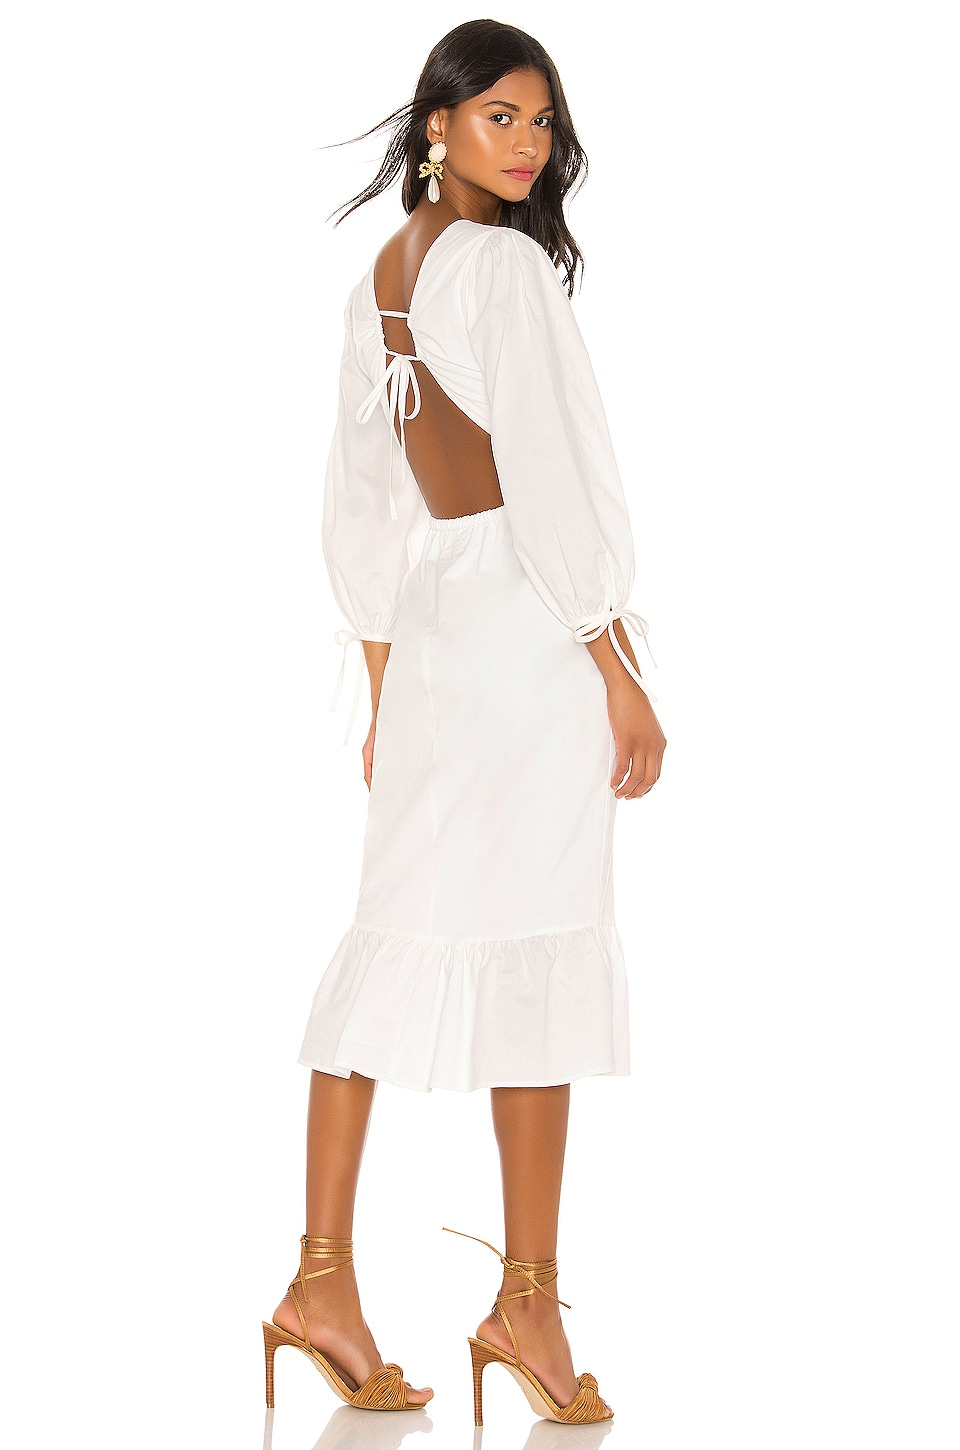 MAJORELLE Heidi Midi Dress in White